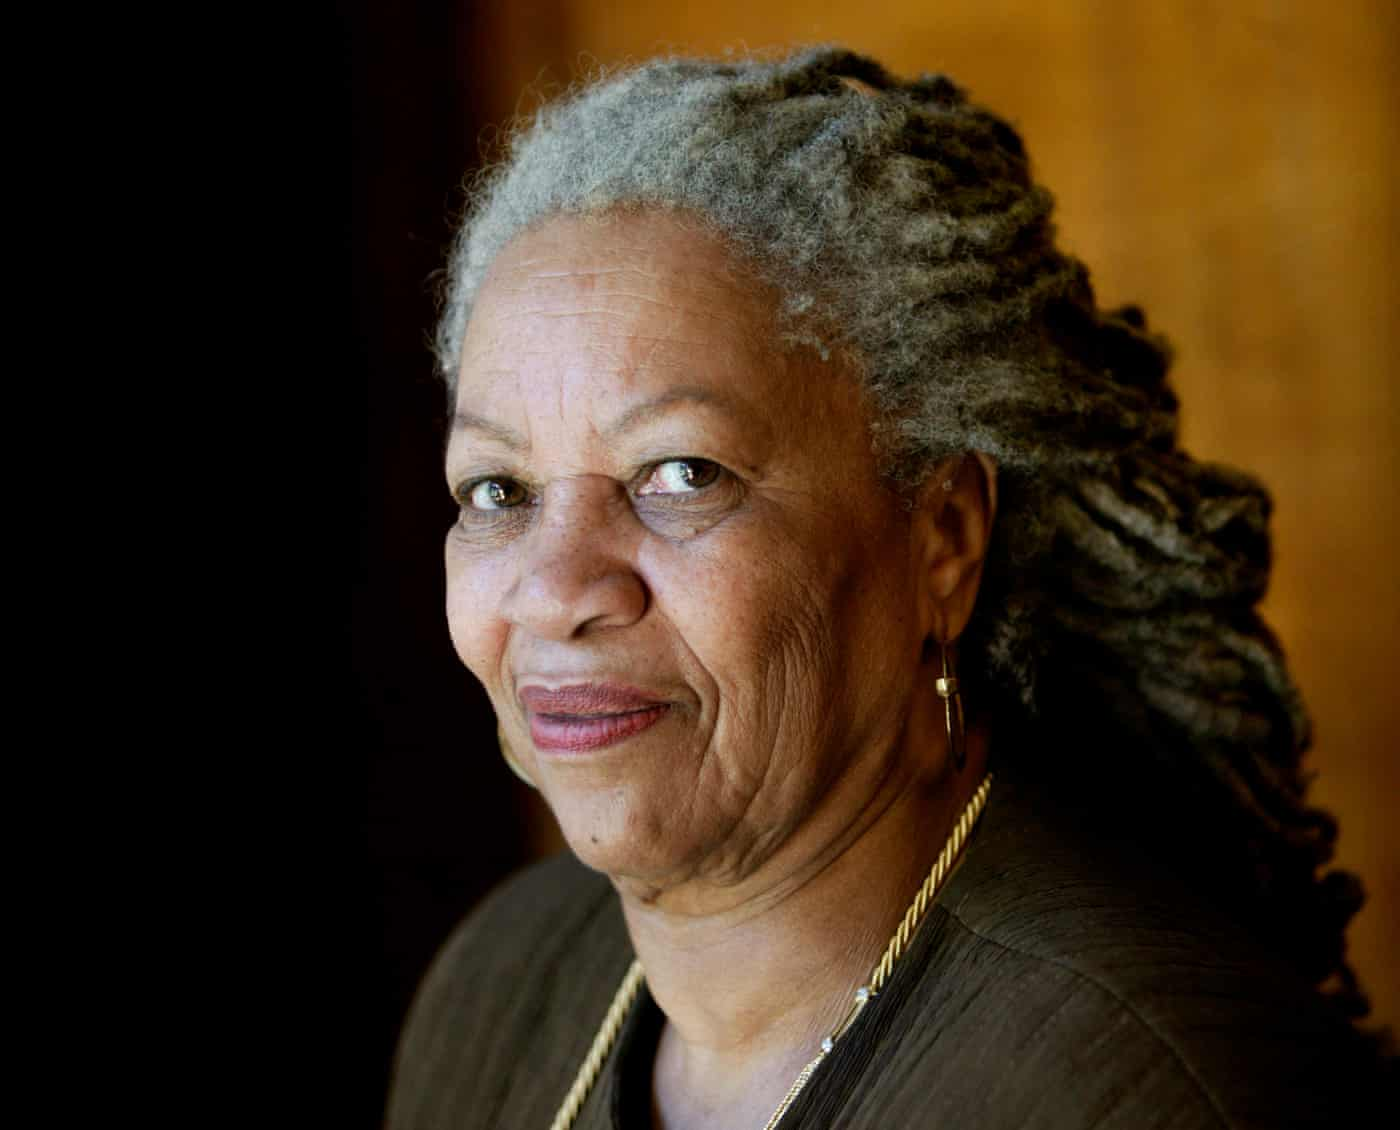 'I wanted to carve out a world both culture specific and race-free': an essay by Toni Morrison